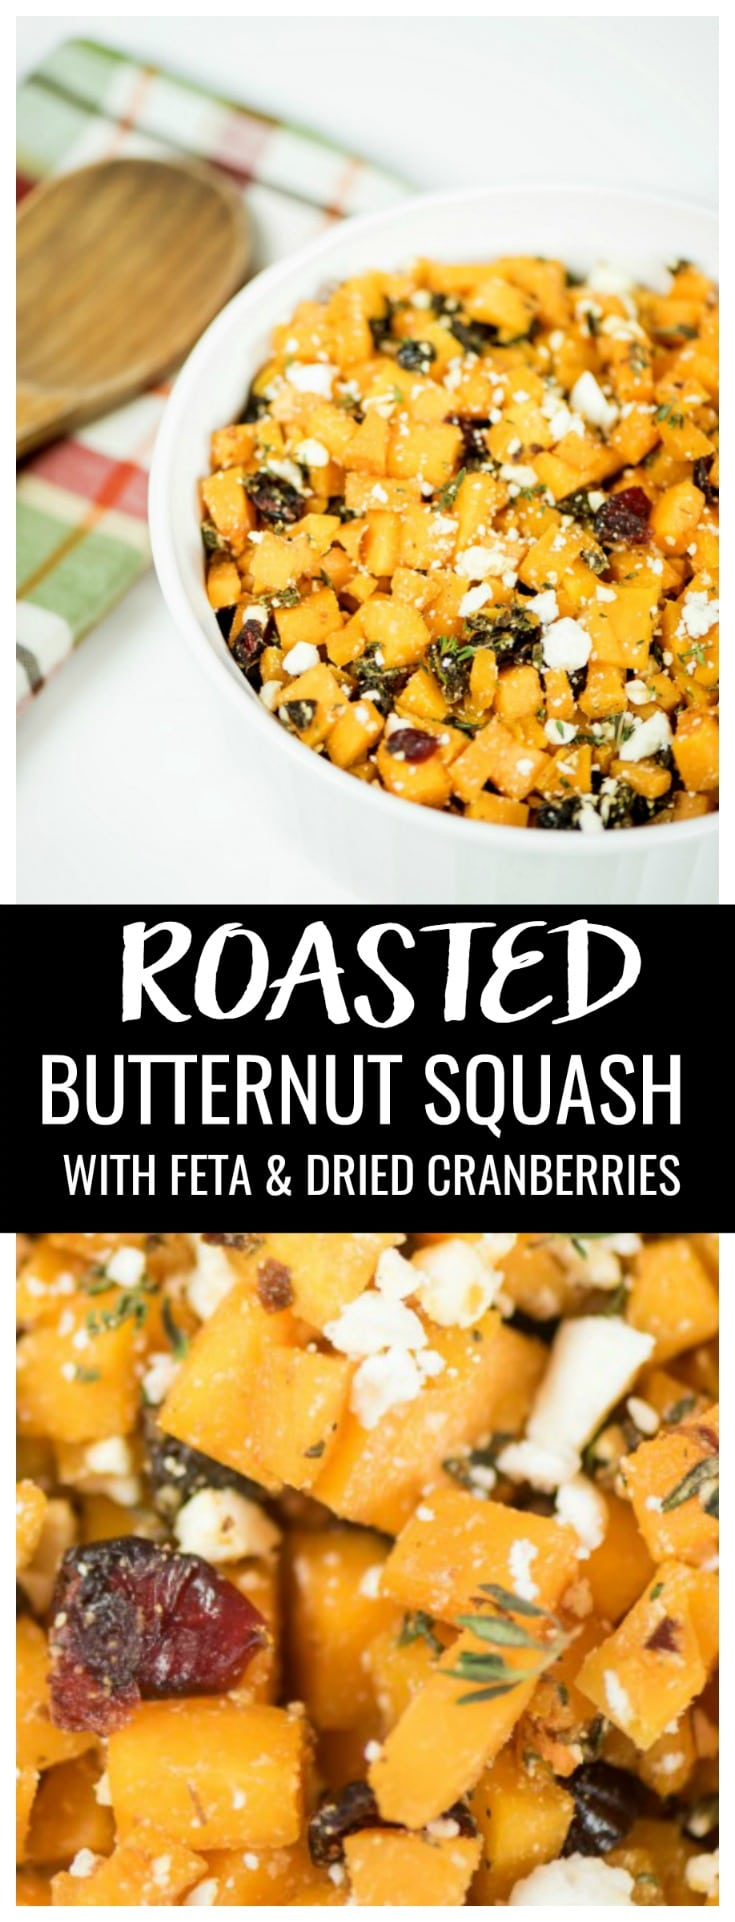 This Roasted Butternut Squash recipe has all the flavors of fall and makes an unexpectedly delicious Thanksgiving side dish. Easy to make and with fresh veggies! #recipes #thanksgiving #sidedishes #butternutsquash #cranberries #veggiesidedish #thanksgivingveggies #thanksgivingrecipes #squashrecipe